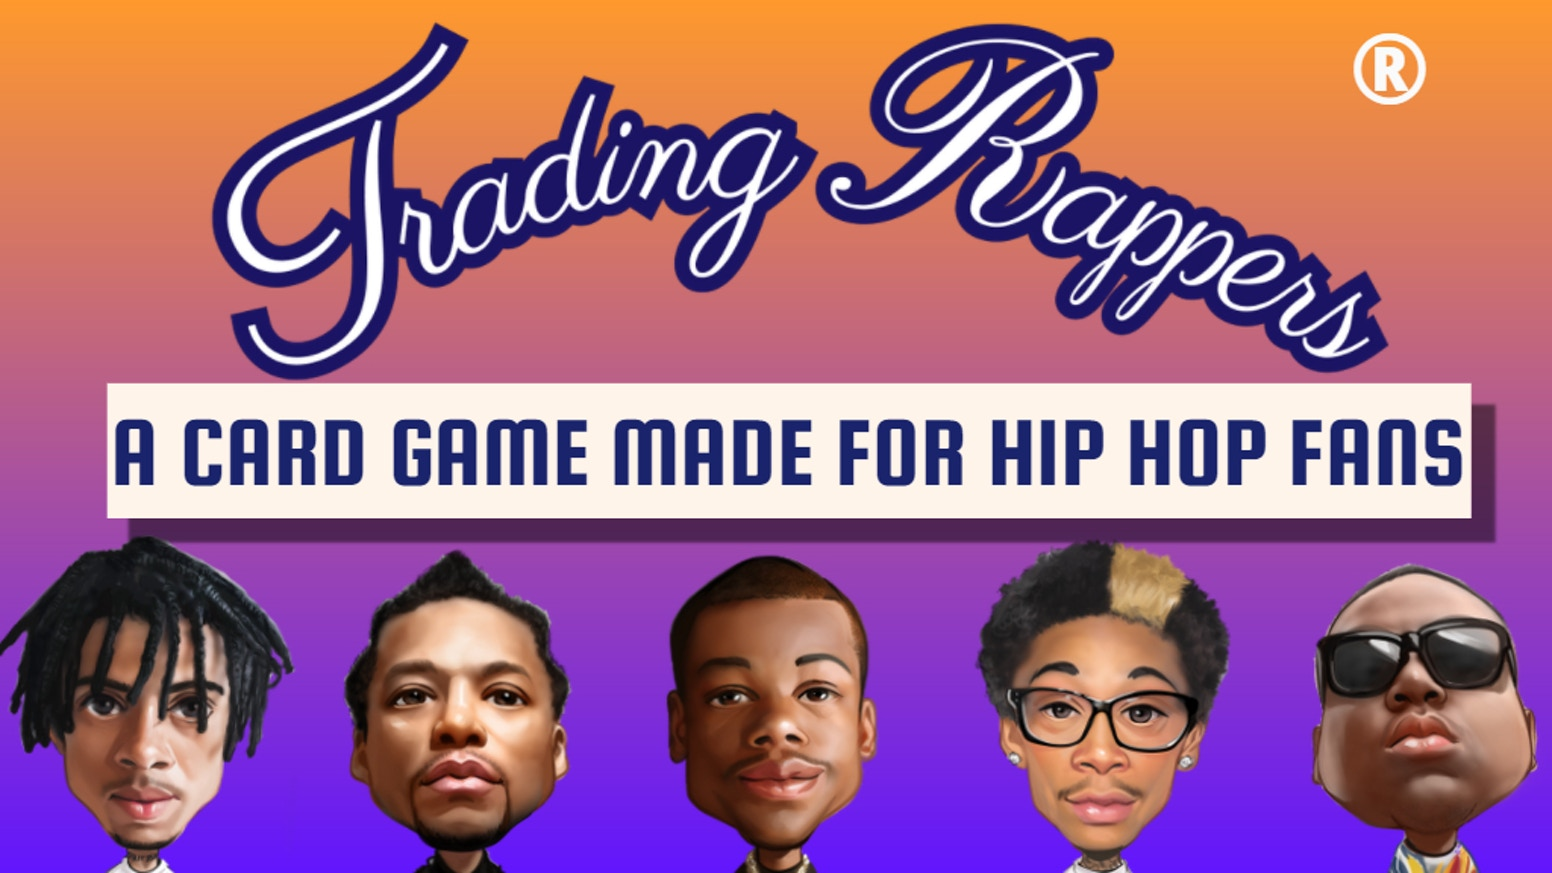 The fun rap-culture themed card game that will settle the greatest rapper debate once and for all.